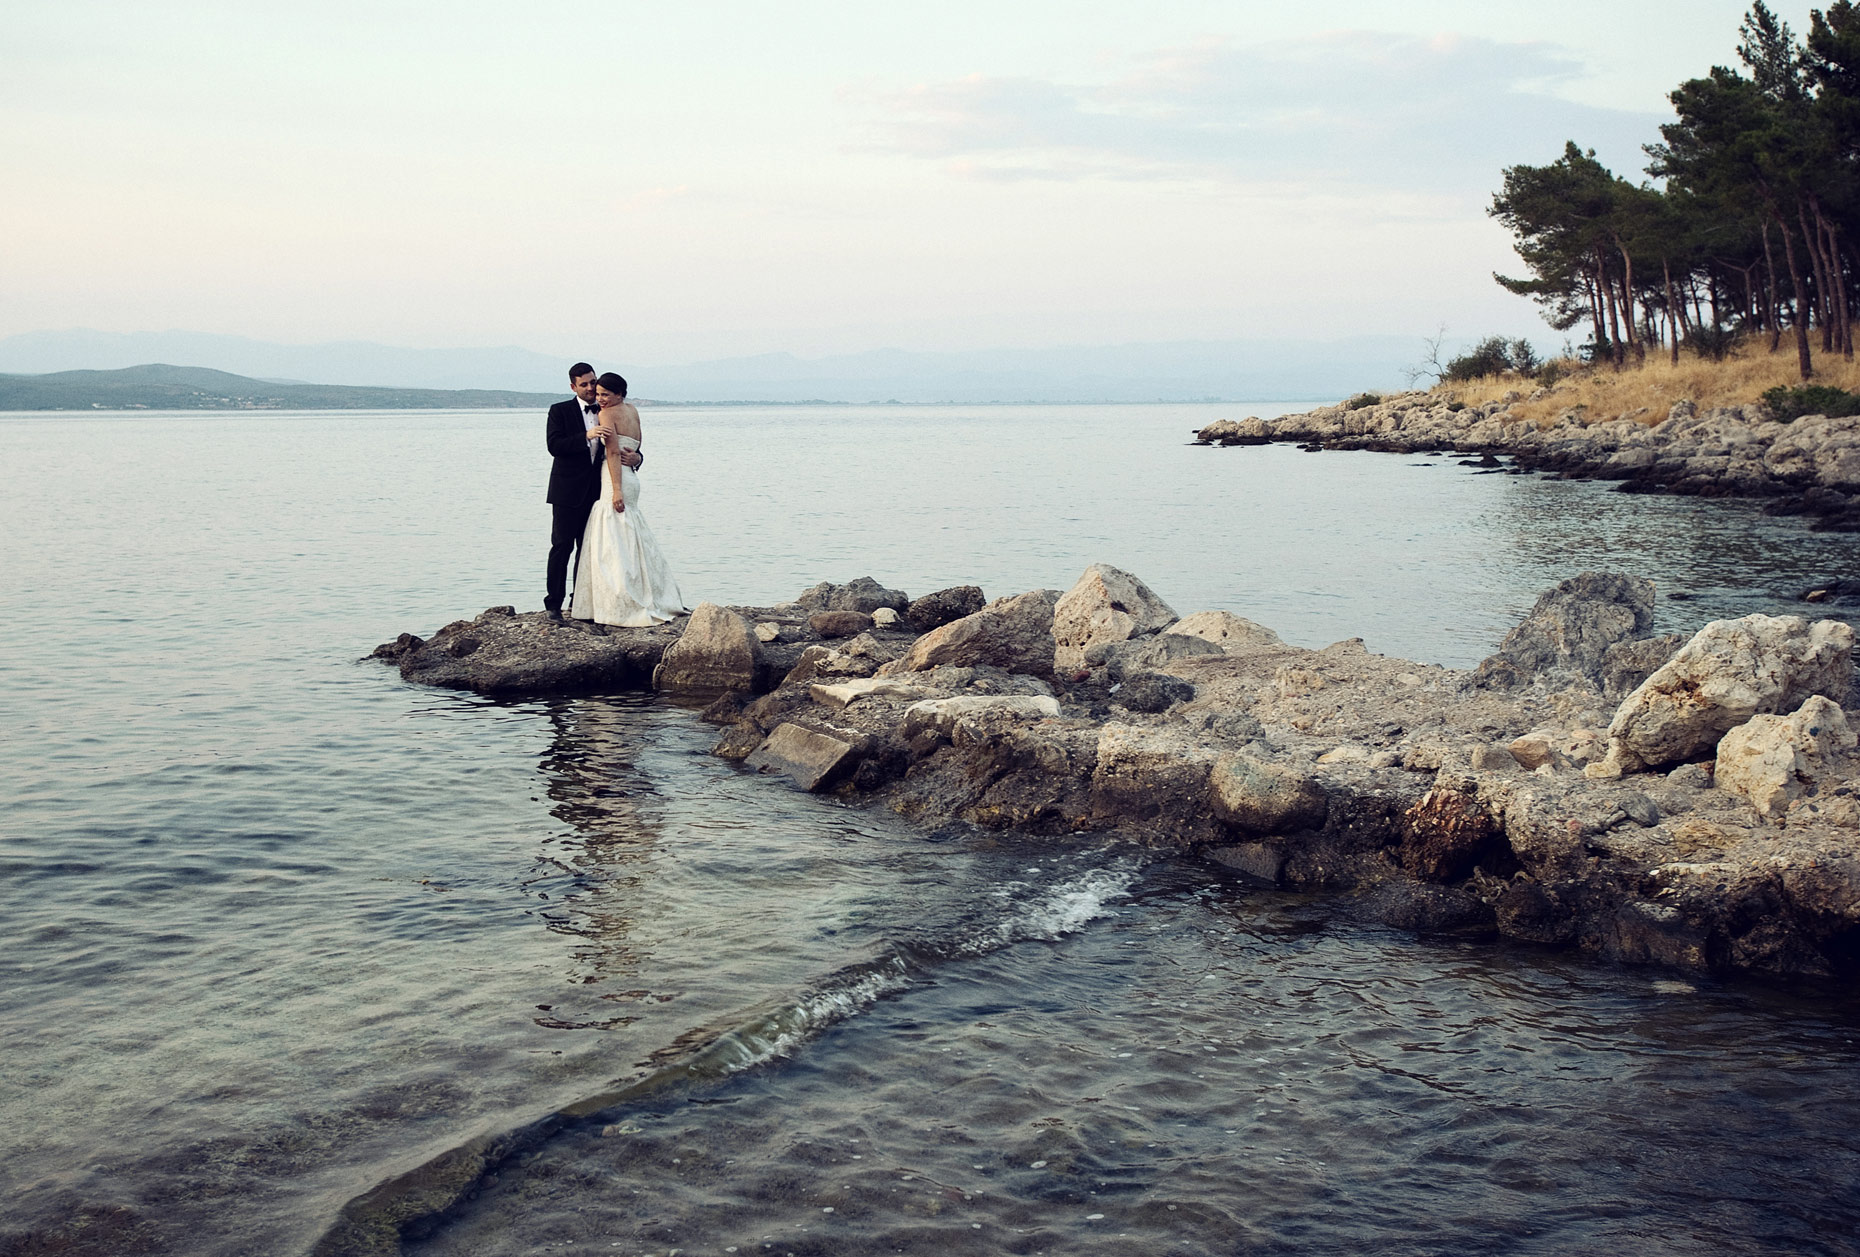 weddingphotographergreece